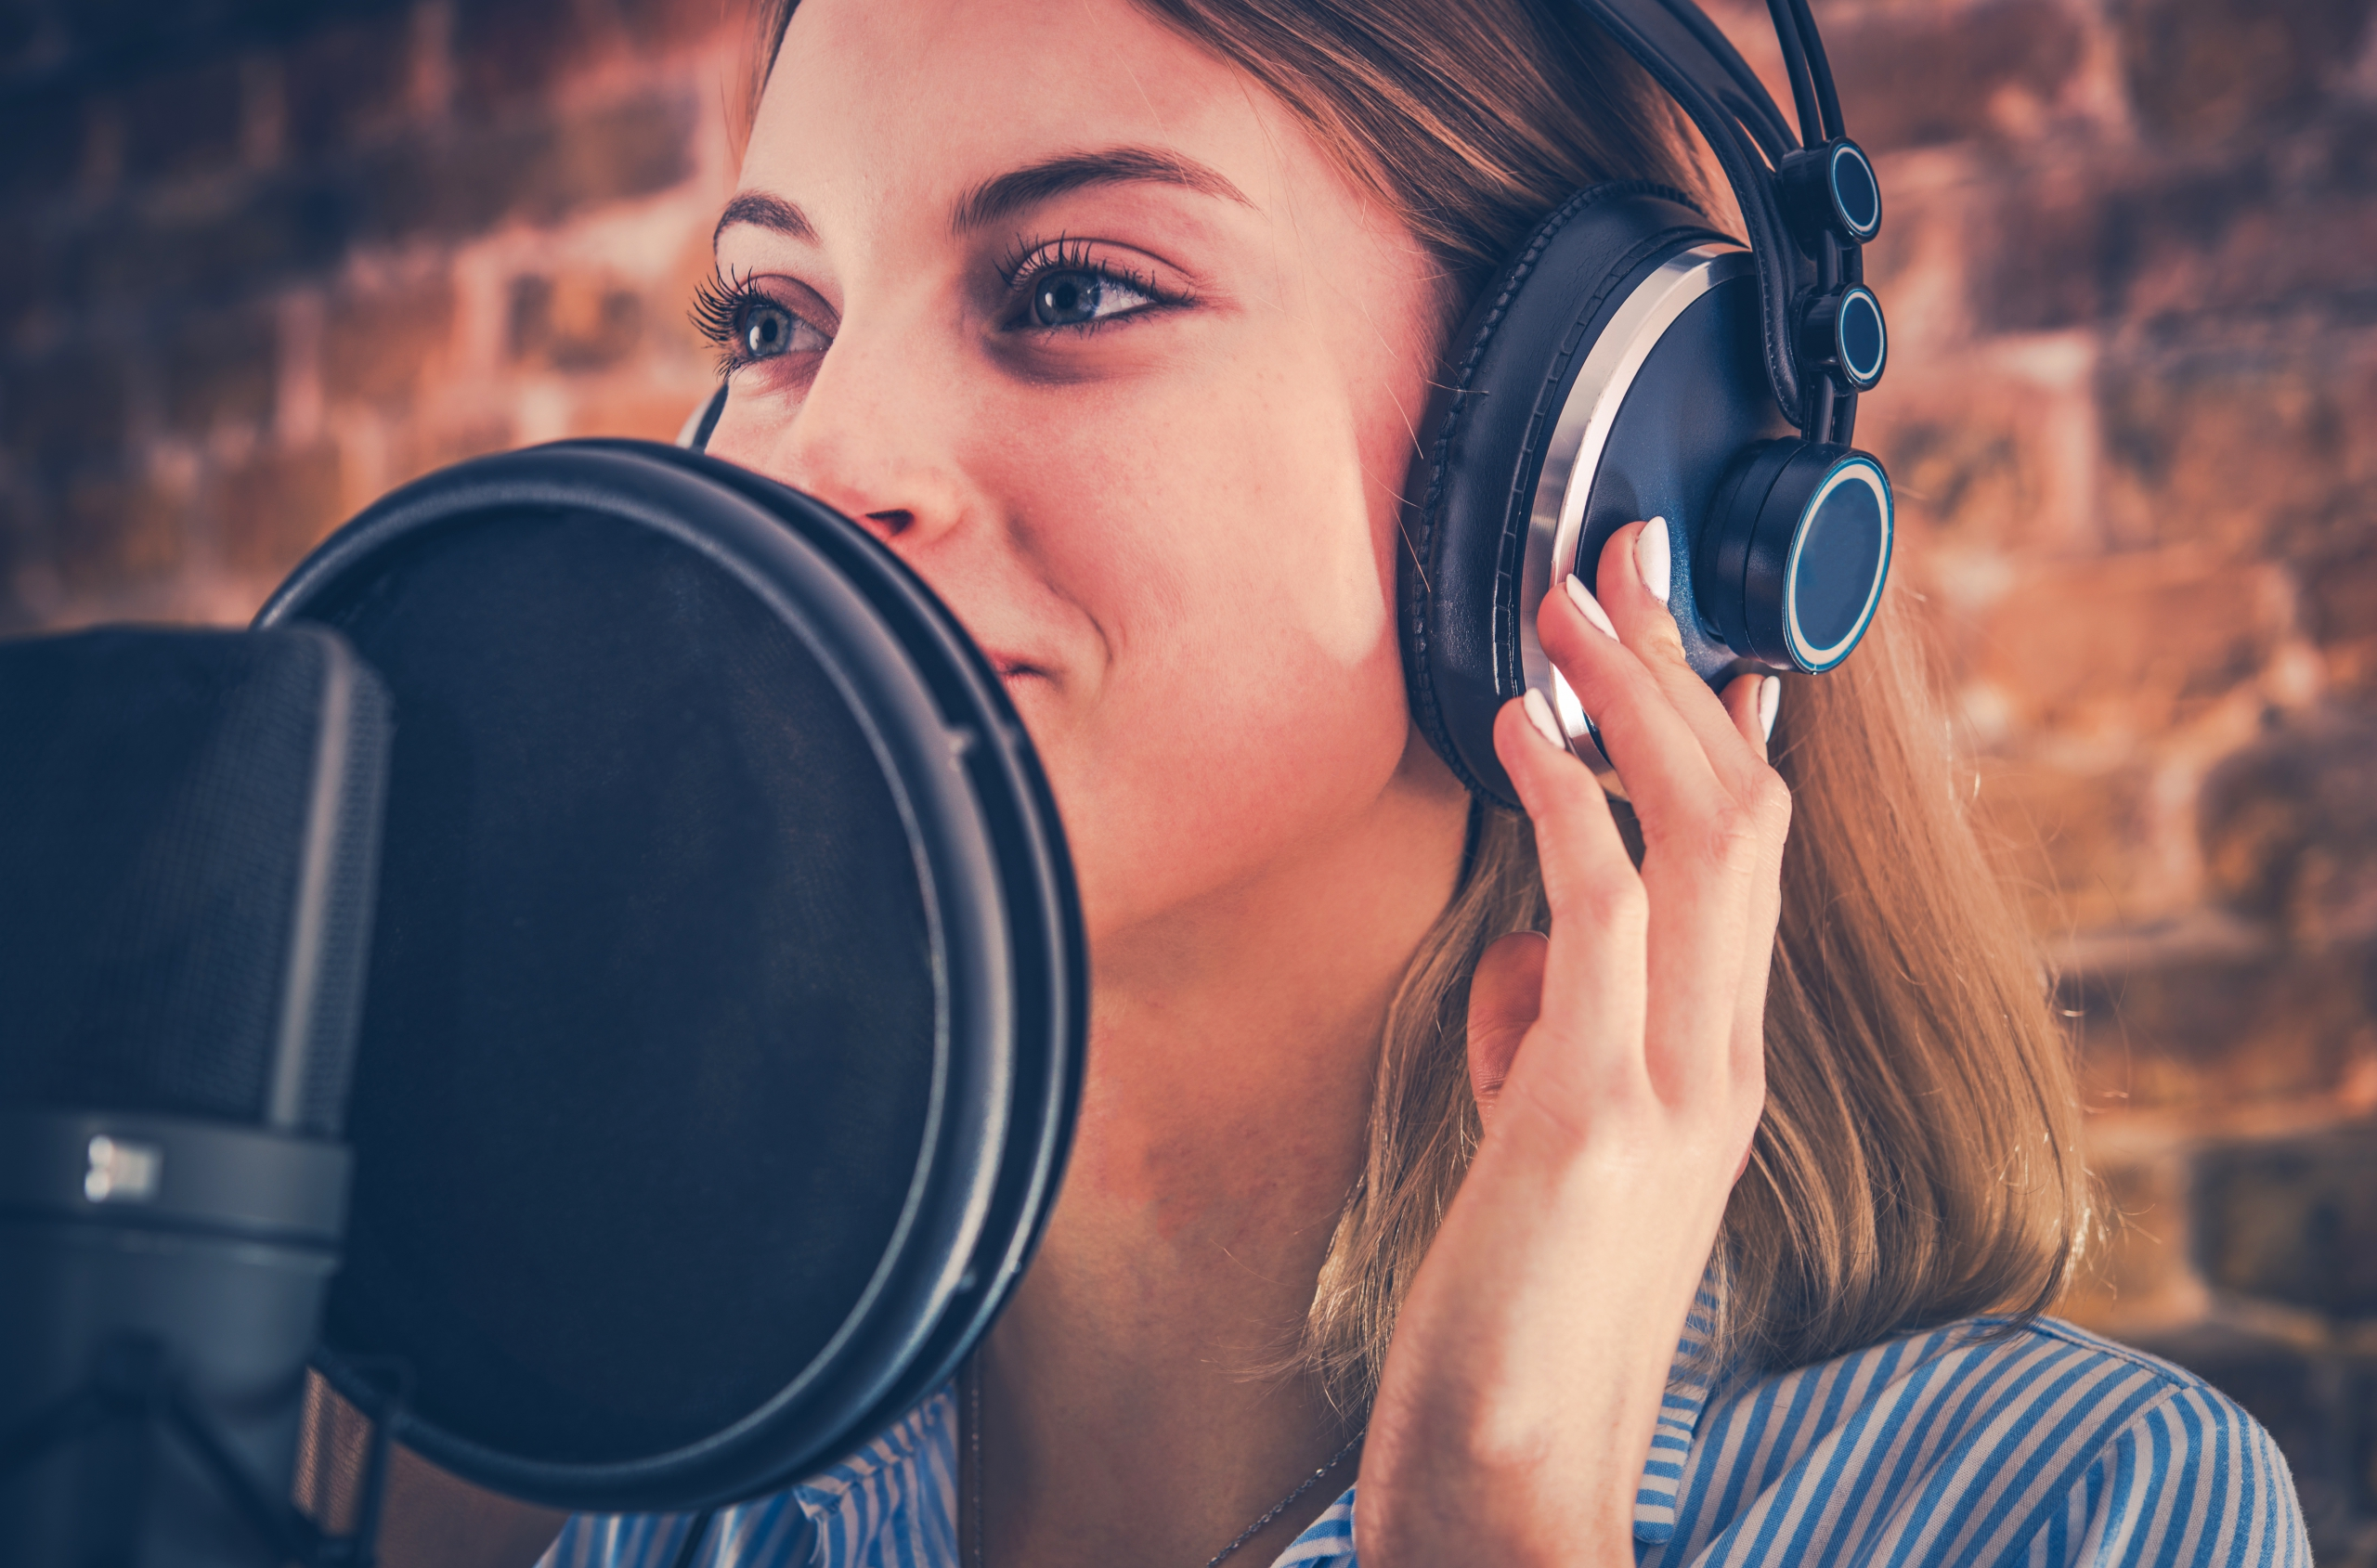 woman recording audiobook P8HH37P scaled